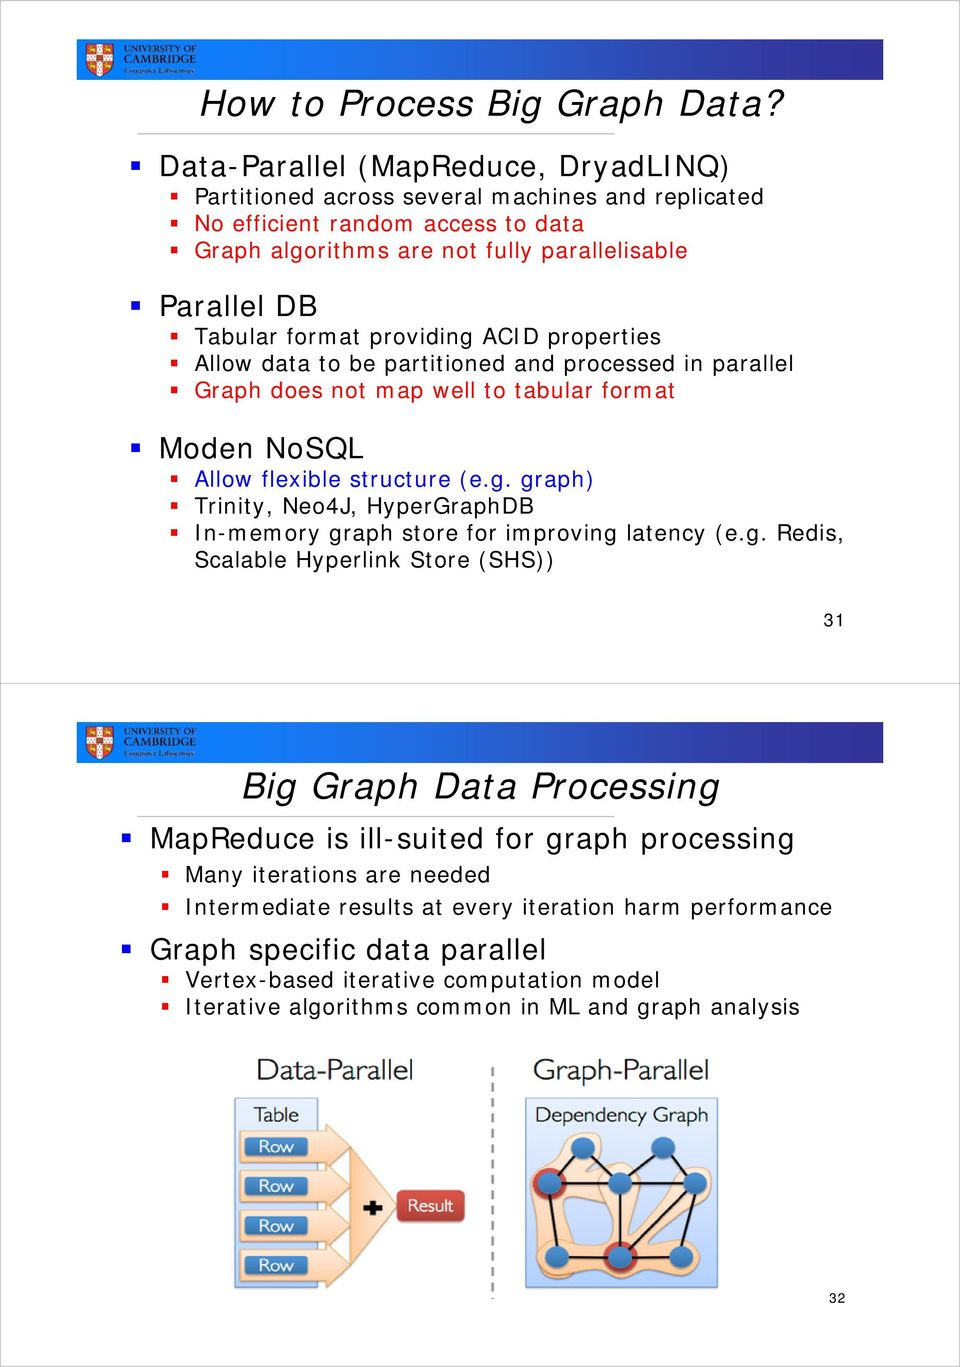 providing ACID properties Allow data to be partitioned and processed in parallel Graph does not map well to tabular format Moden NoSQL Allow flexible structure (e.g. graph) Trinity, Neo4J, HyperGraphDB In-memory graph store for improving latency (e.